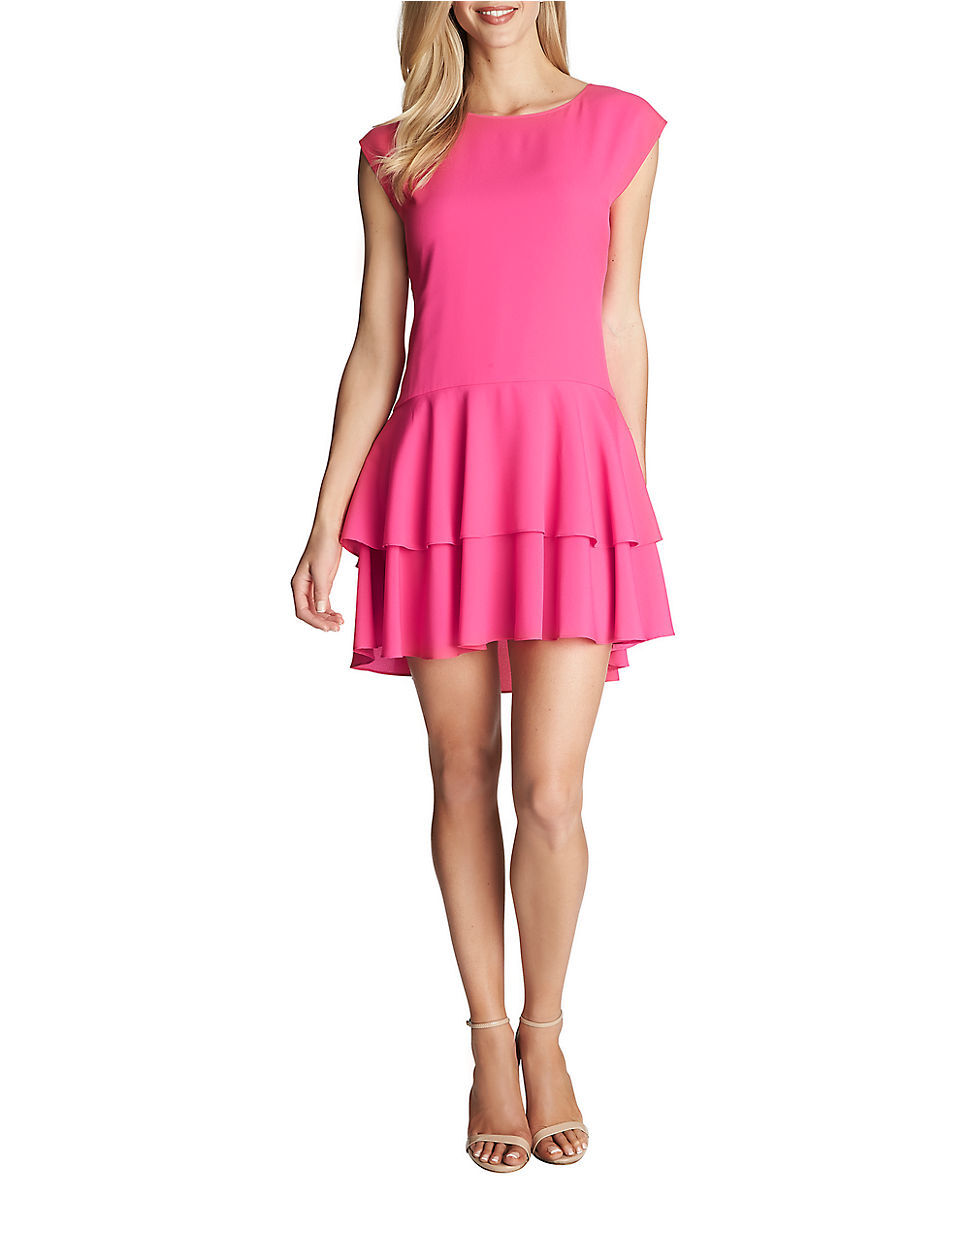 Cece Cynthia Steffe Rosa Lily Tierot Drop Waist cap sleeve relaxed fit Dress 2